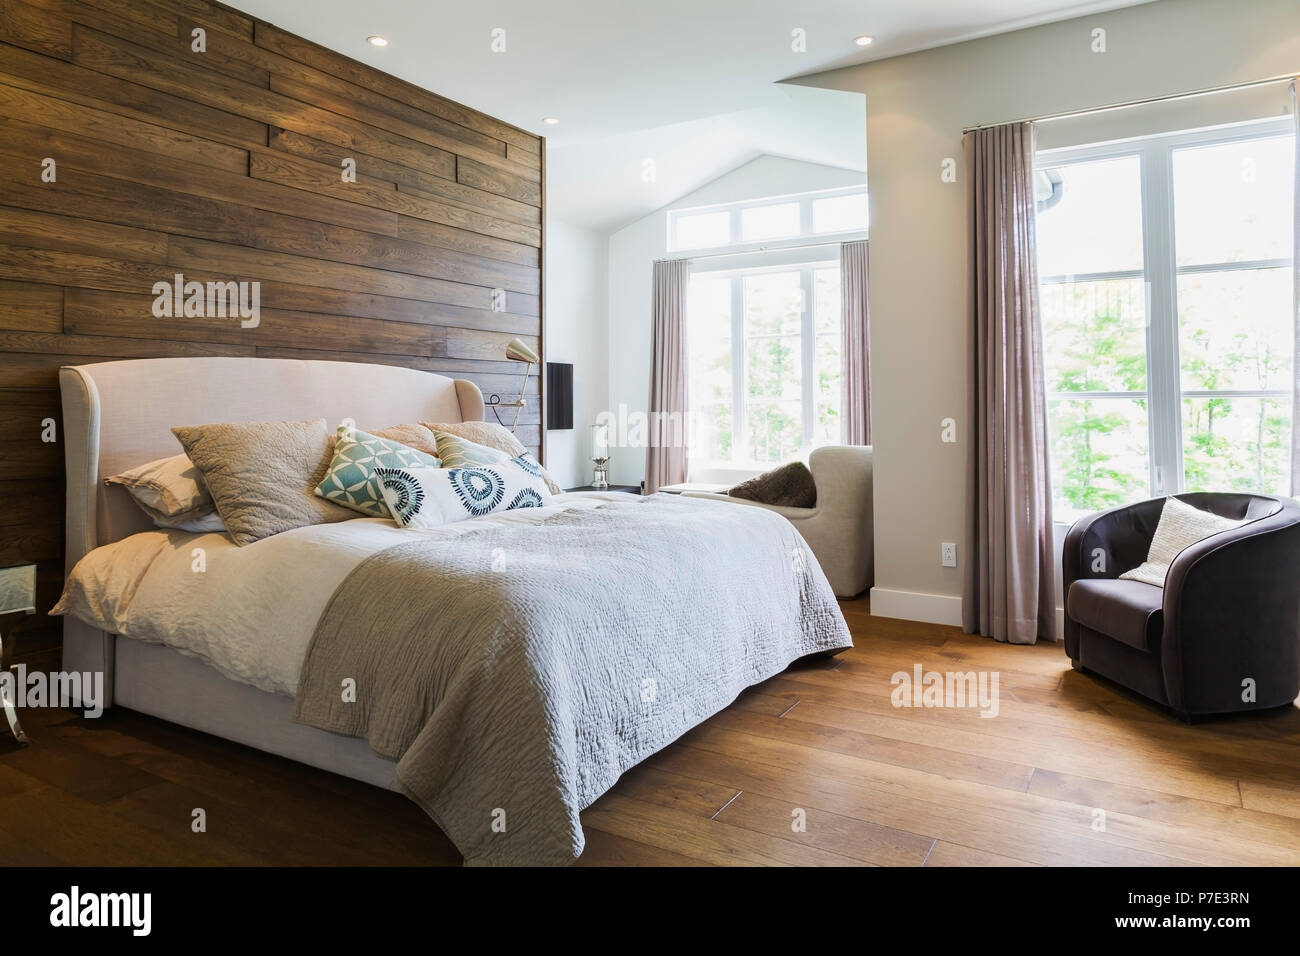 King size bed in bedroom with hickory wood floorboards - Stock Image